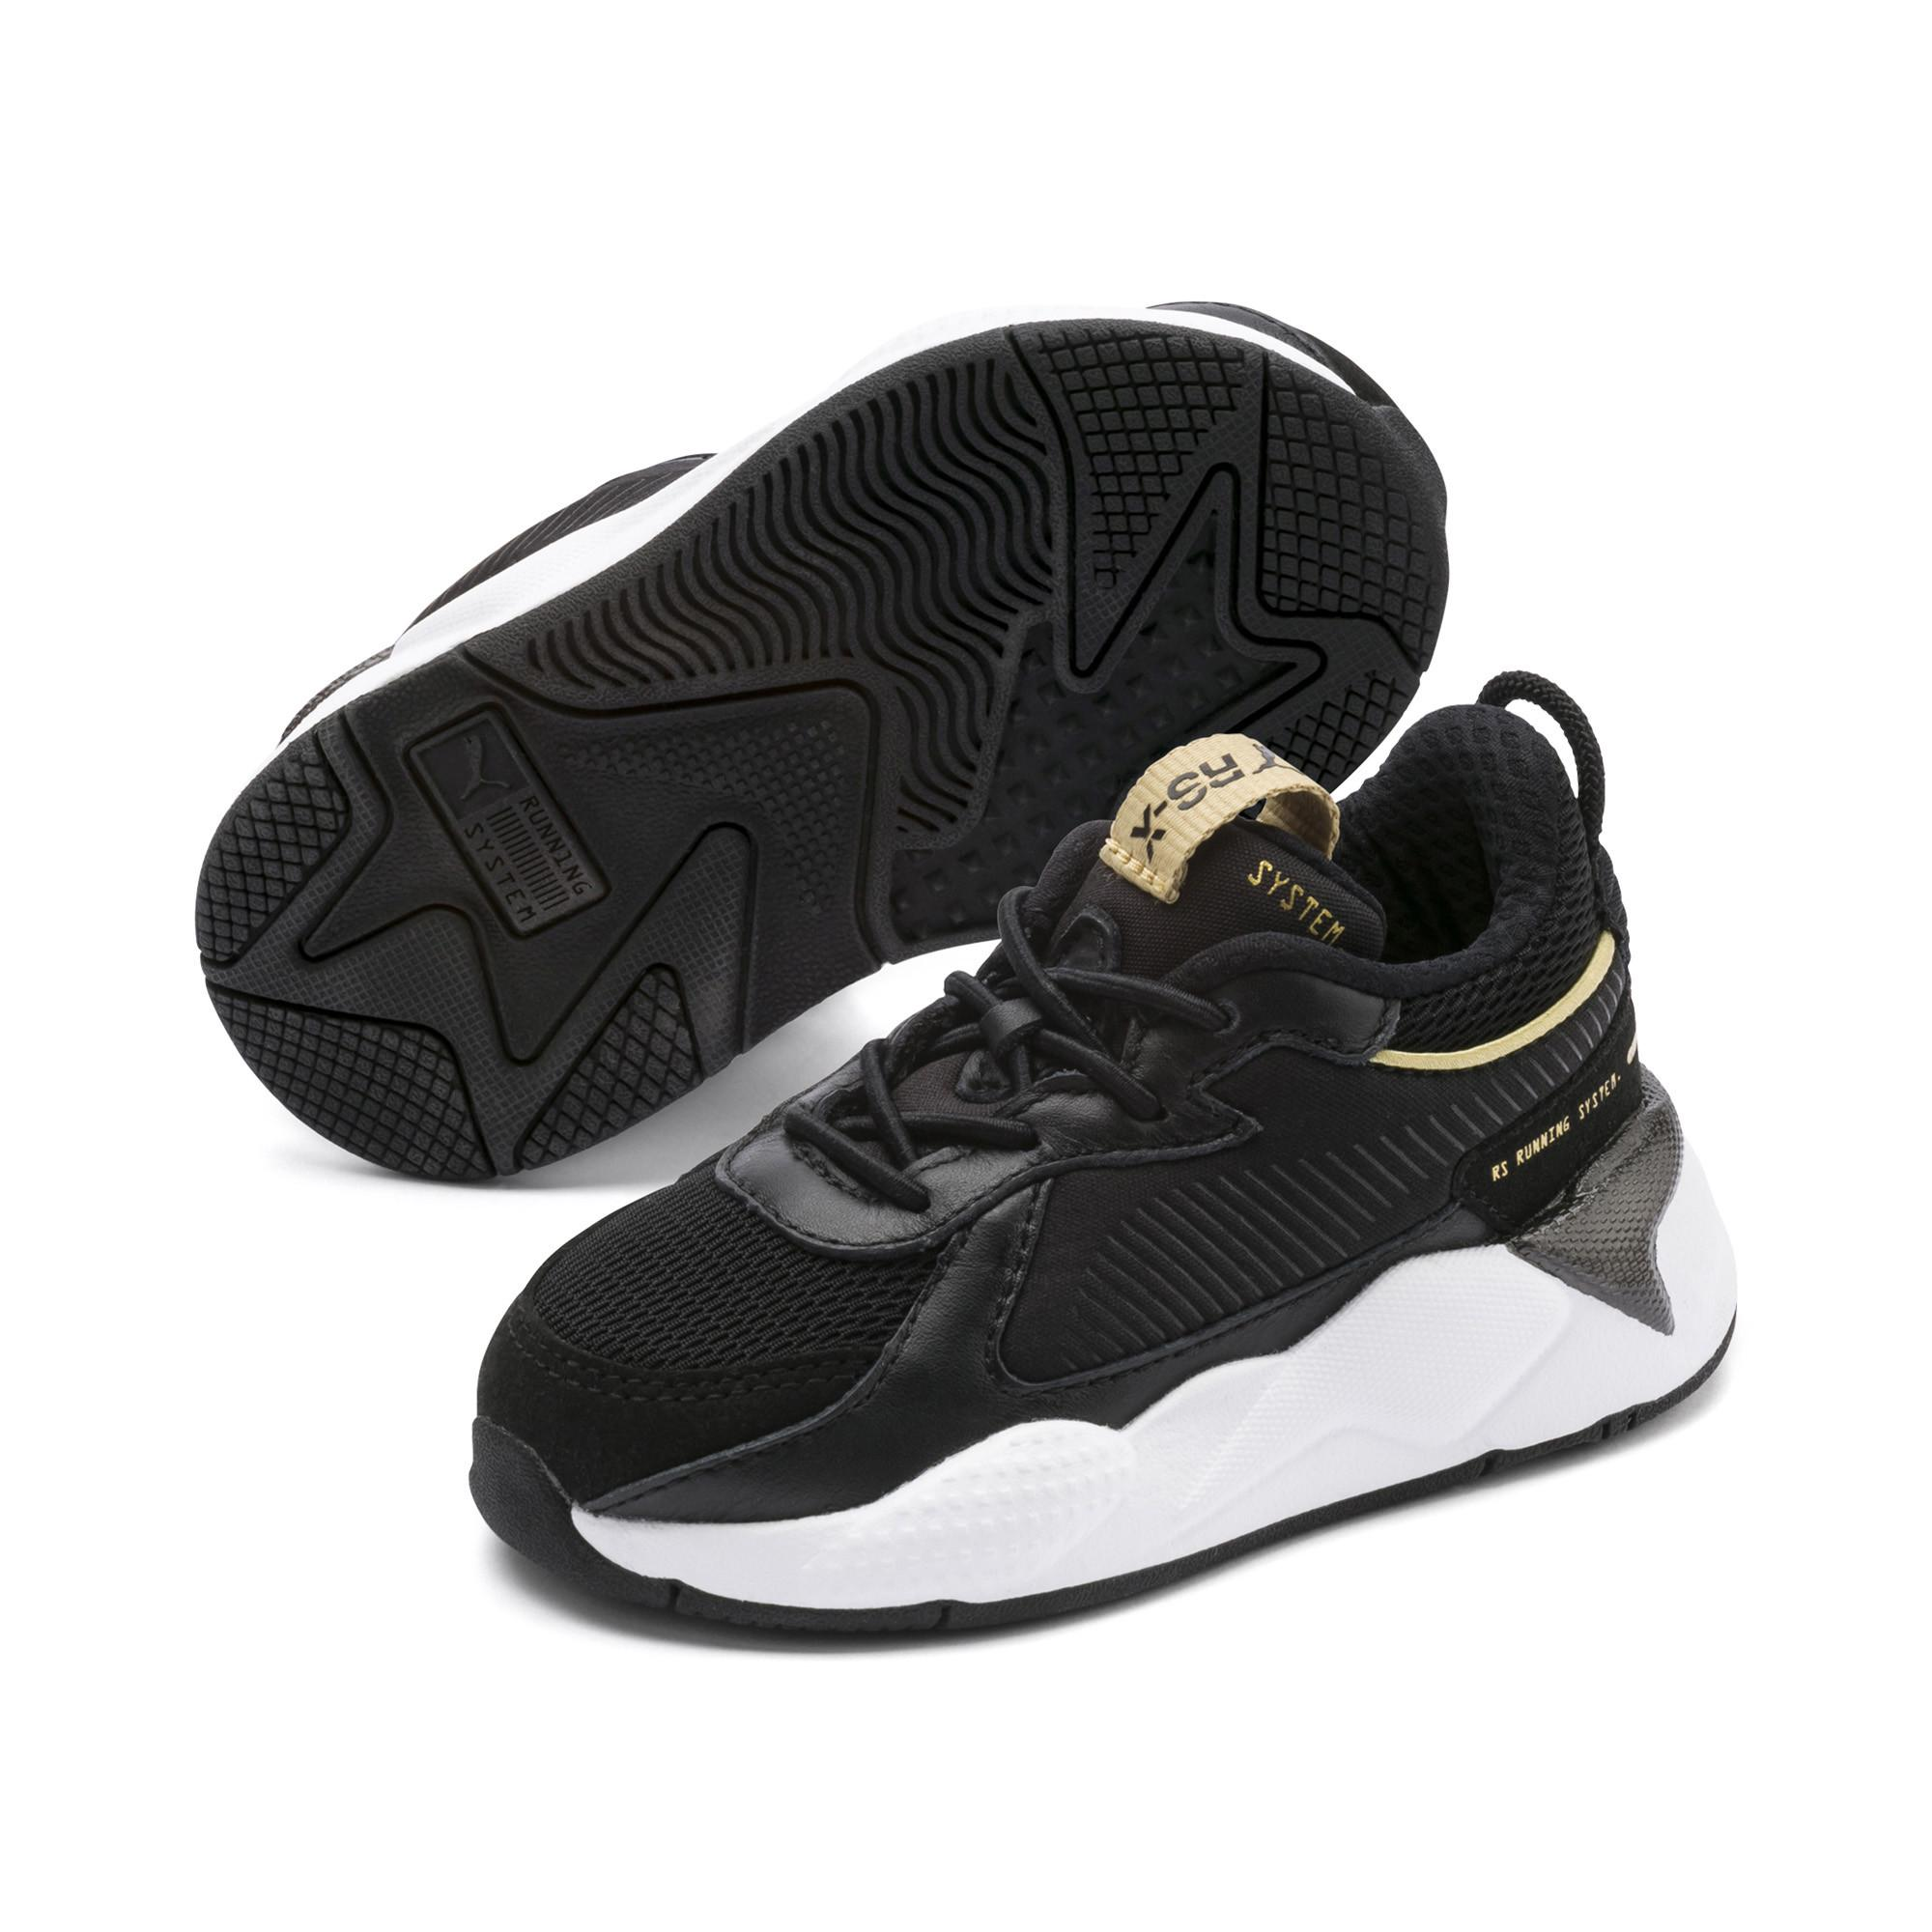 PUMA - Black Rs-x Trophy Ac Sneakers Inf for Men - Lyst. View fullscreen 312c6cc11